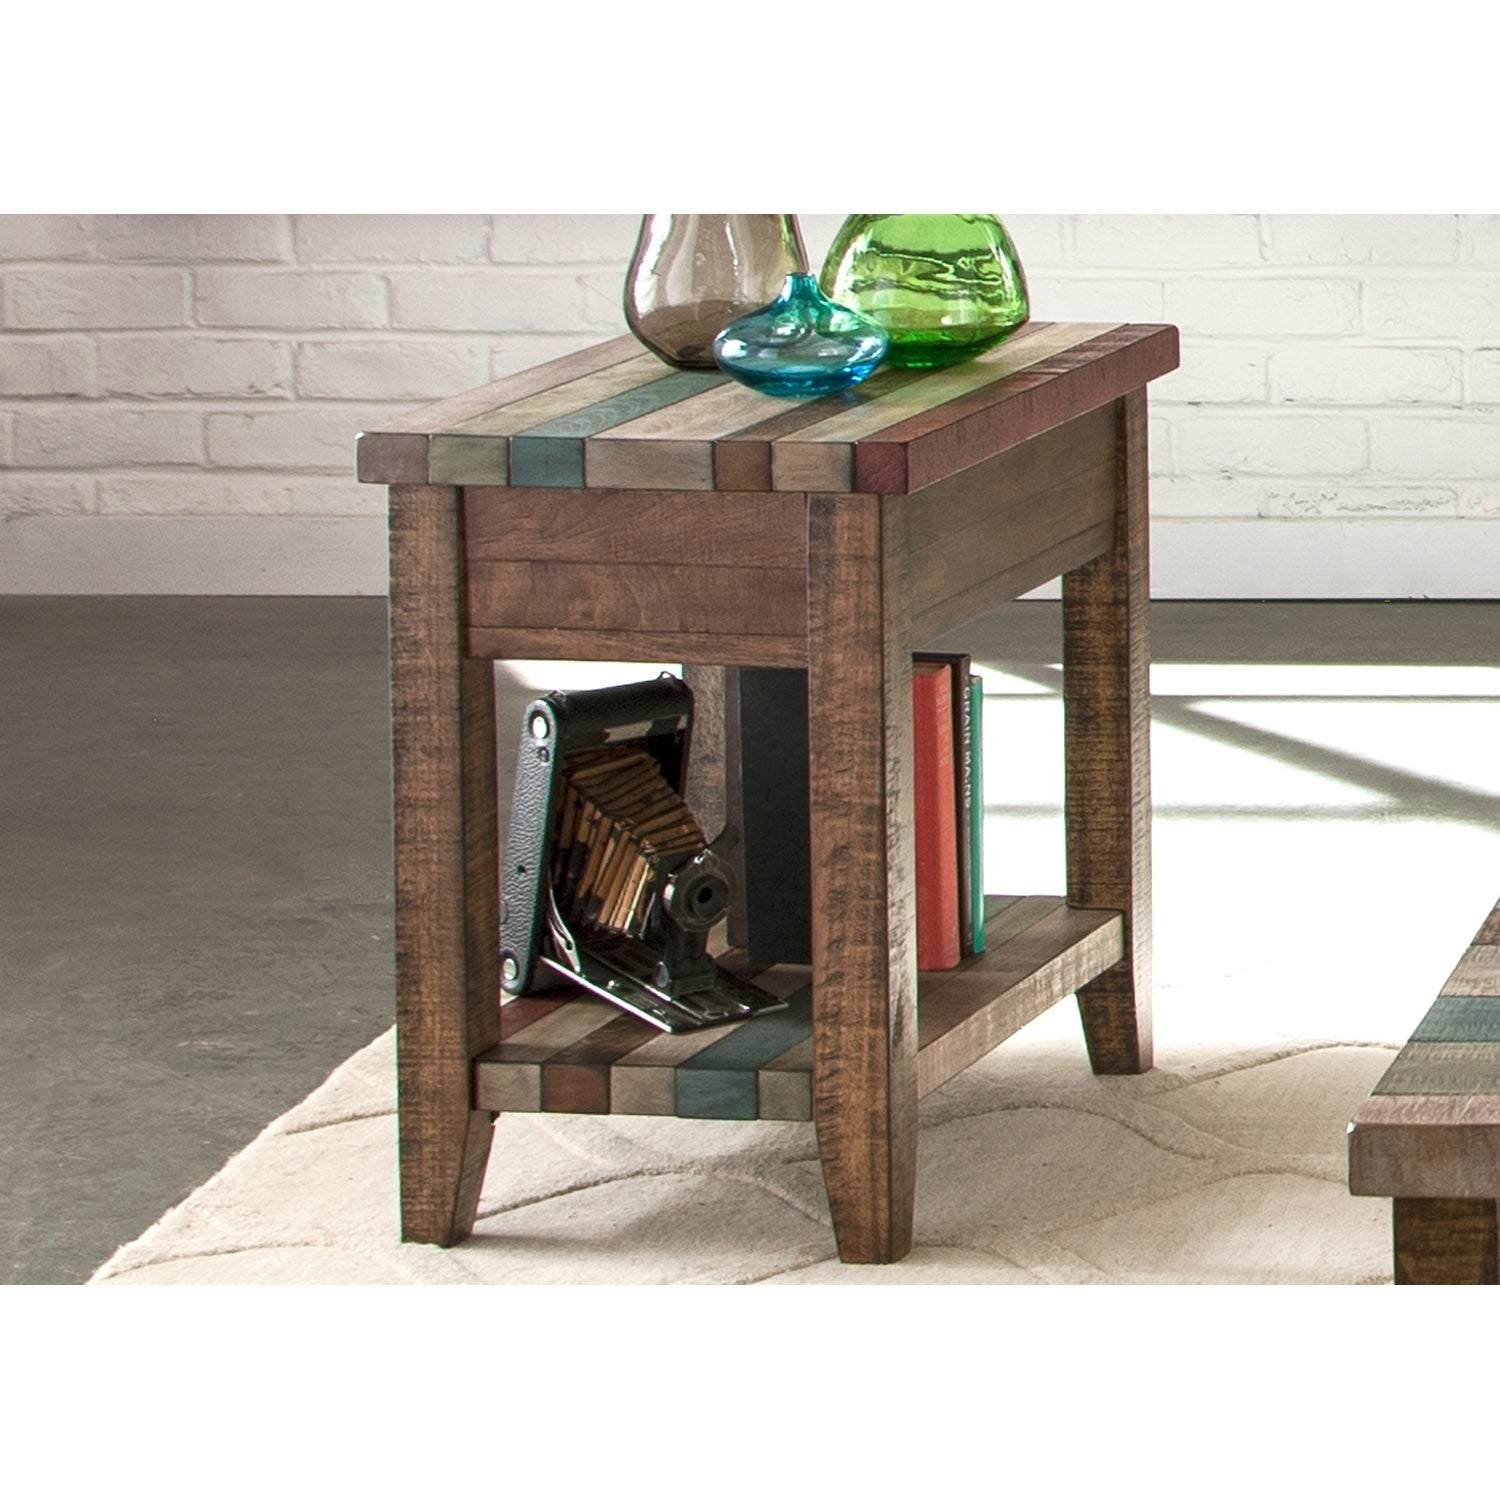 Boho Loft Rustic Multi Color Chair Side Table Free Shipping